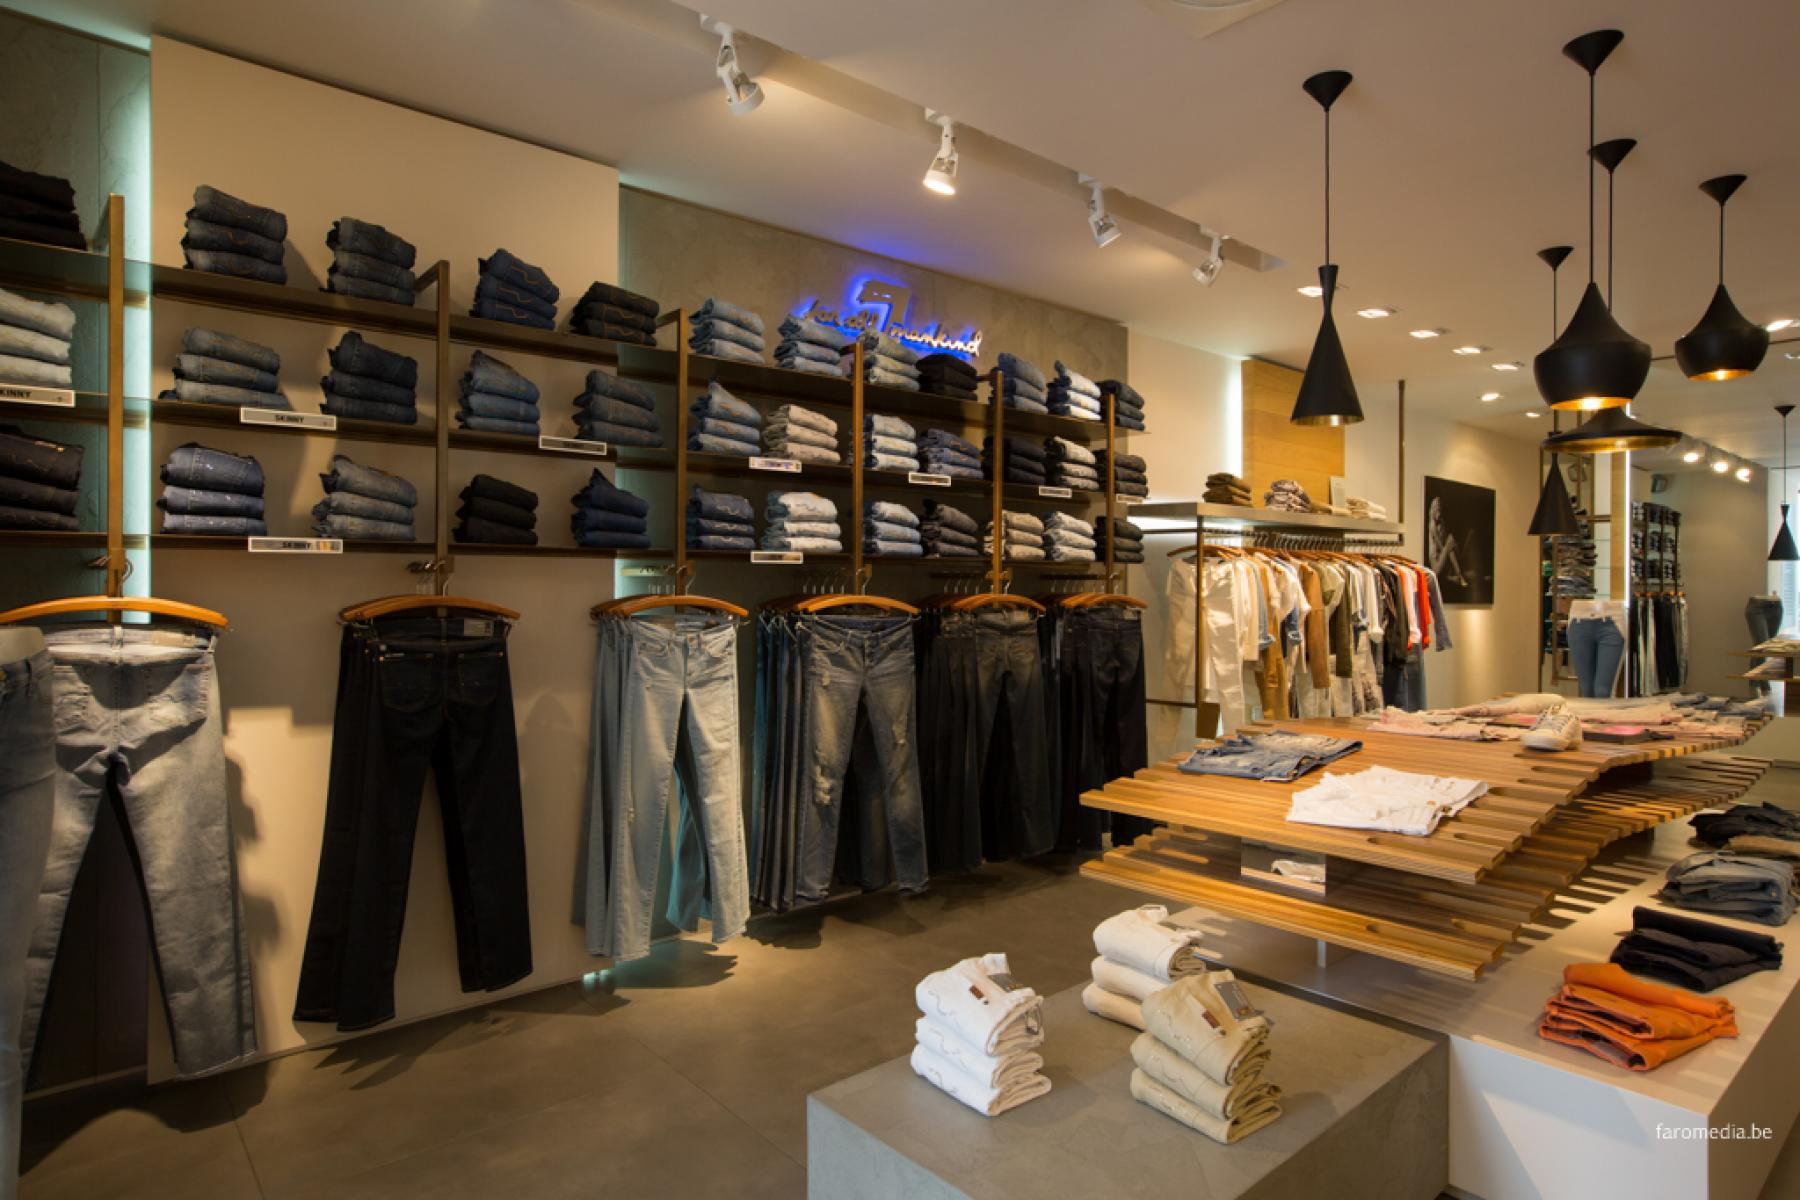 Visit_Nieuwpoort - 7 for all Mankind